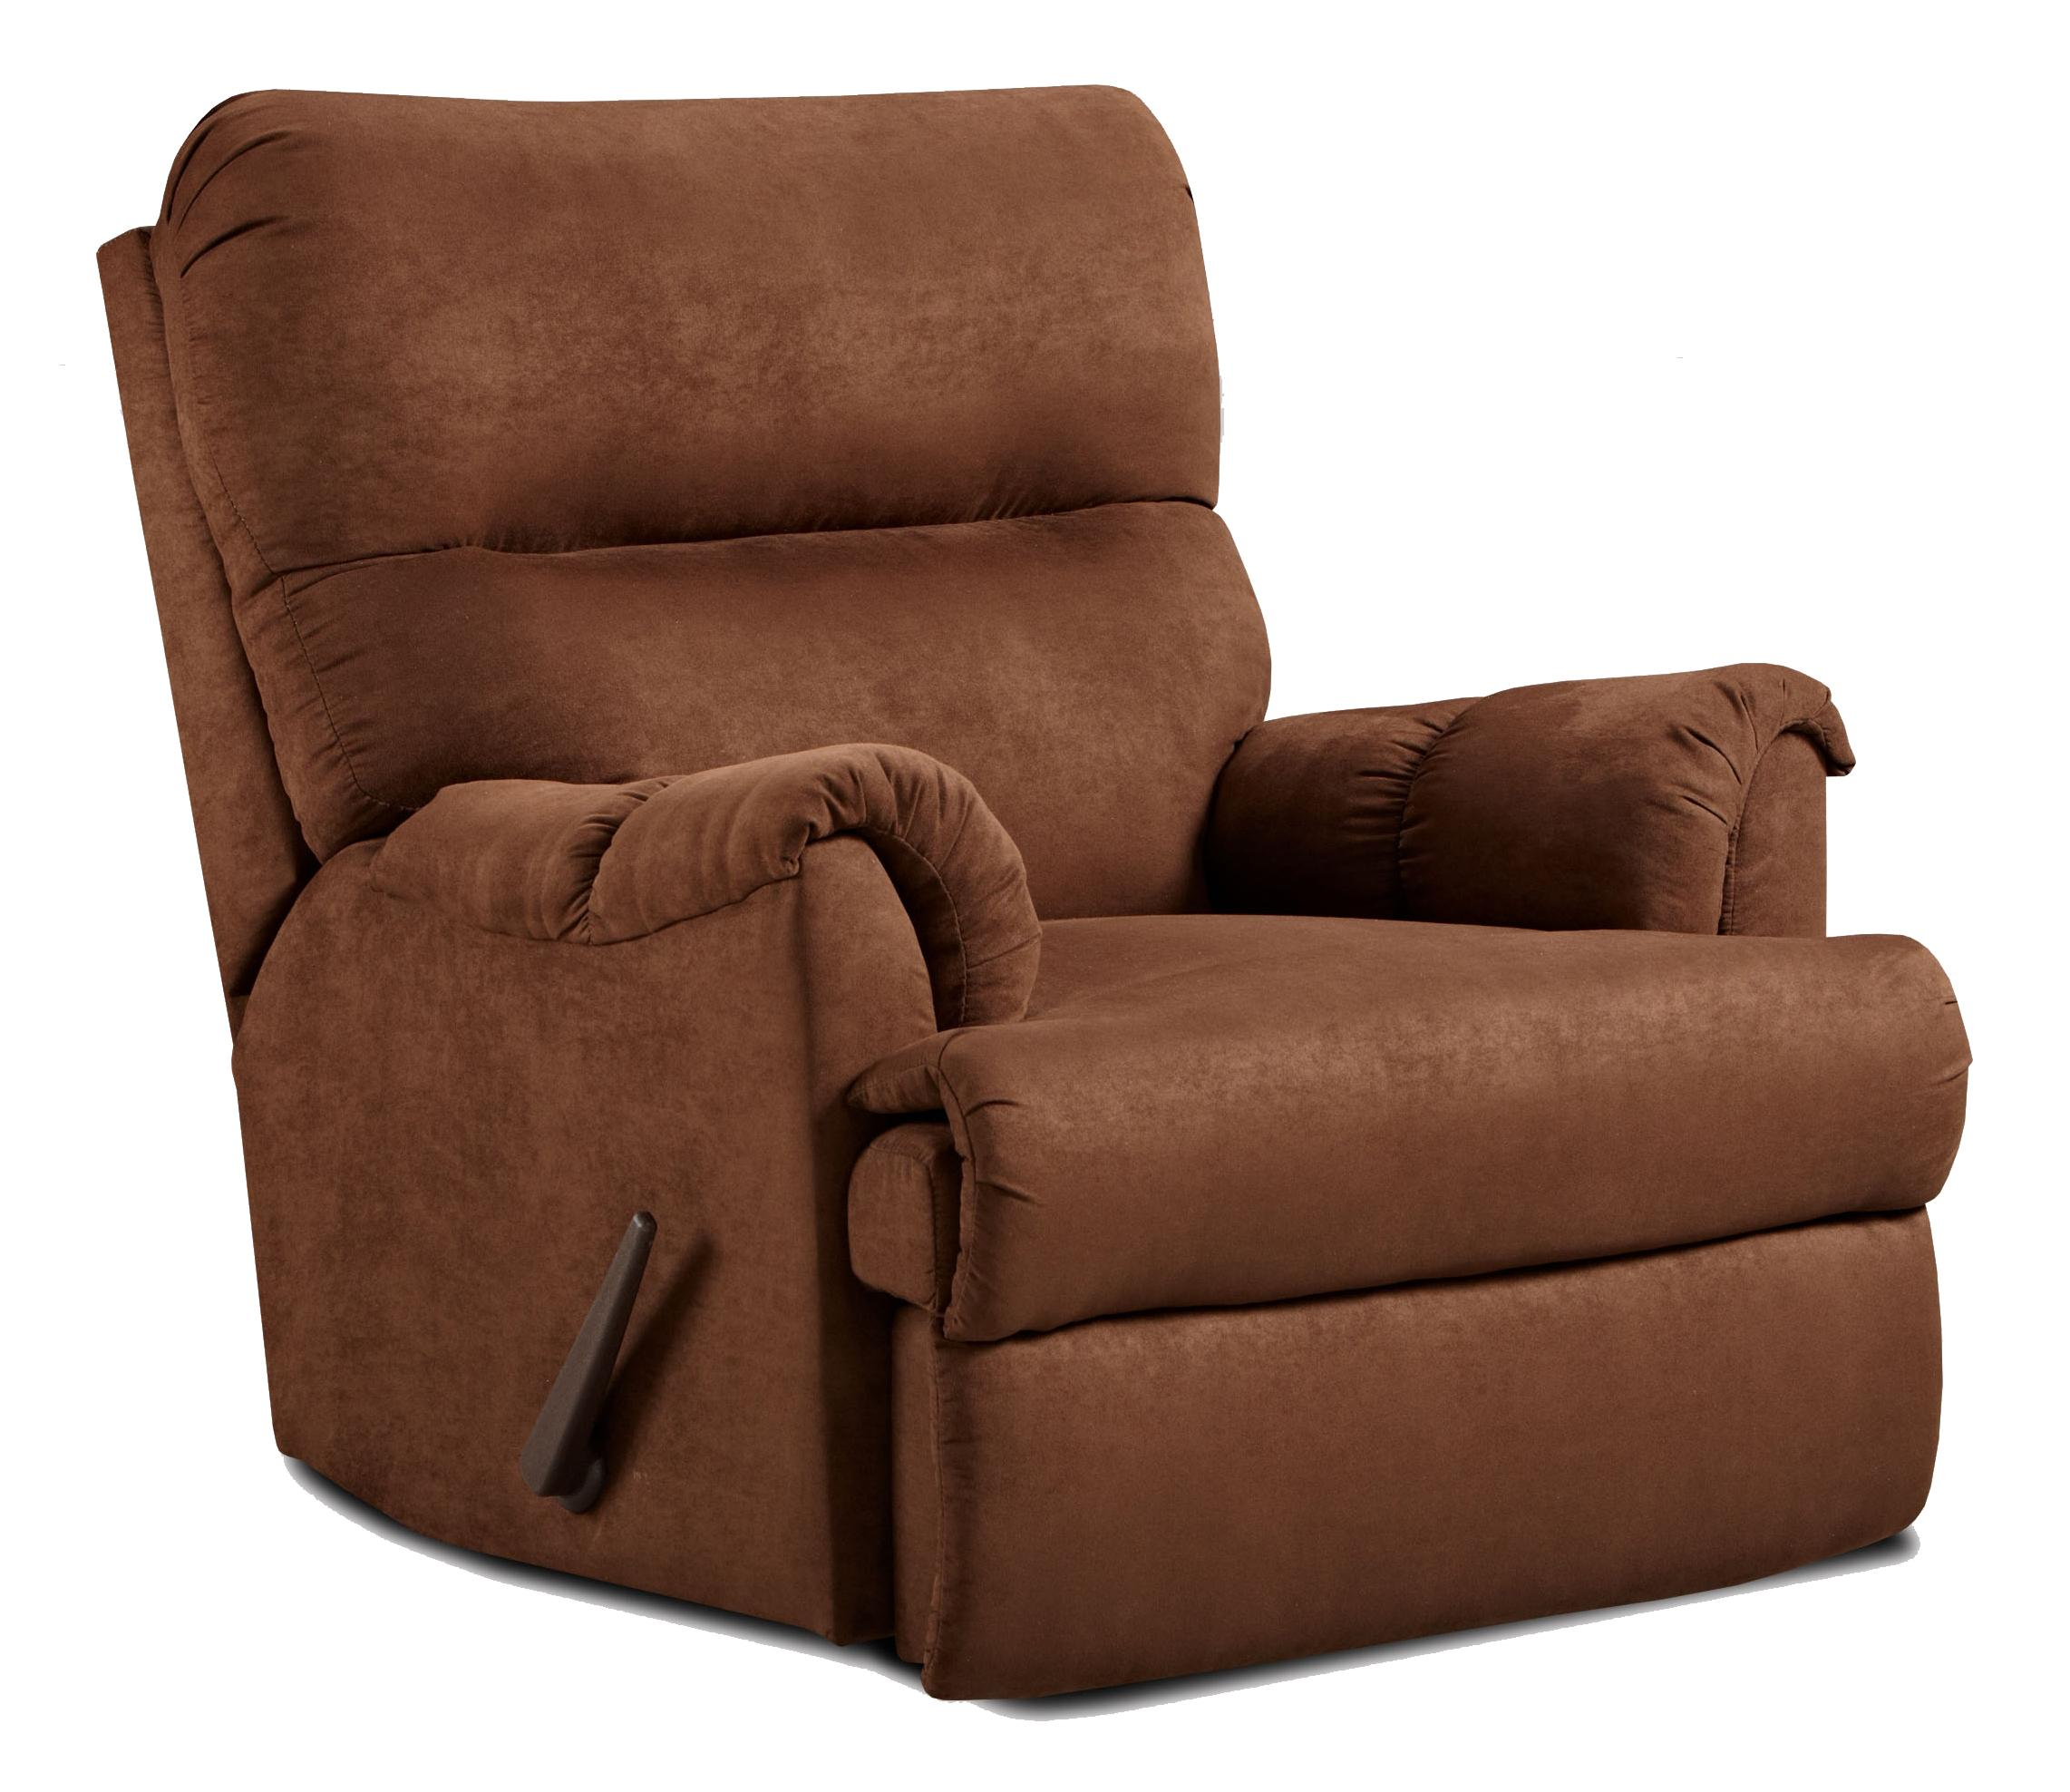 Affordable Furniture 2155 Chaise Rocker Recliner - Item Number: 2155 A